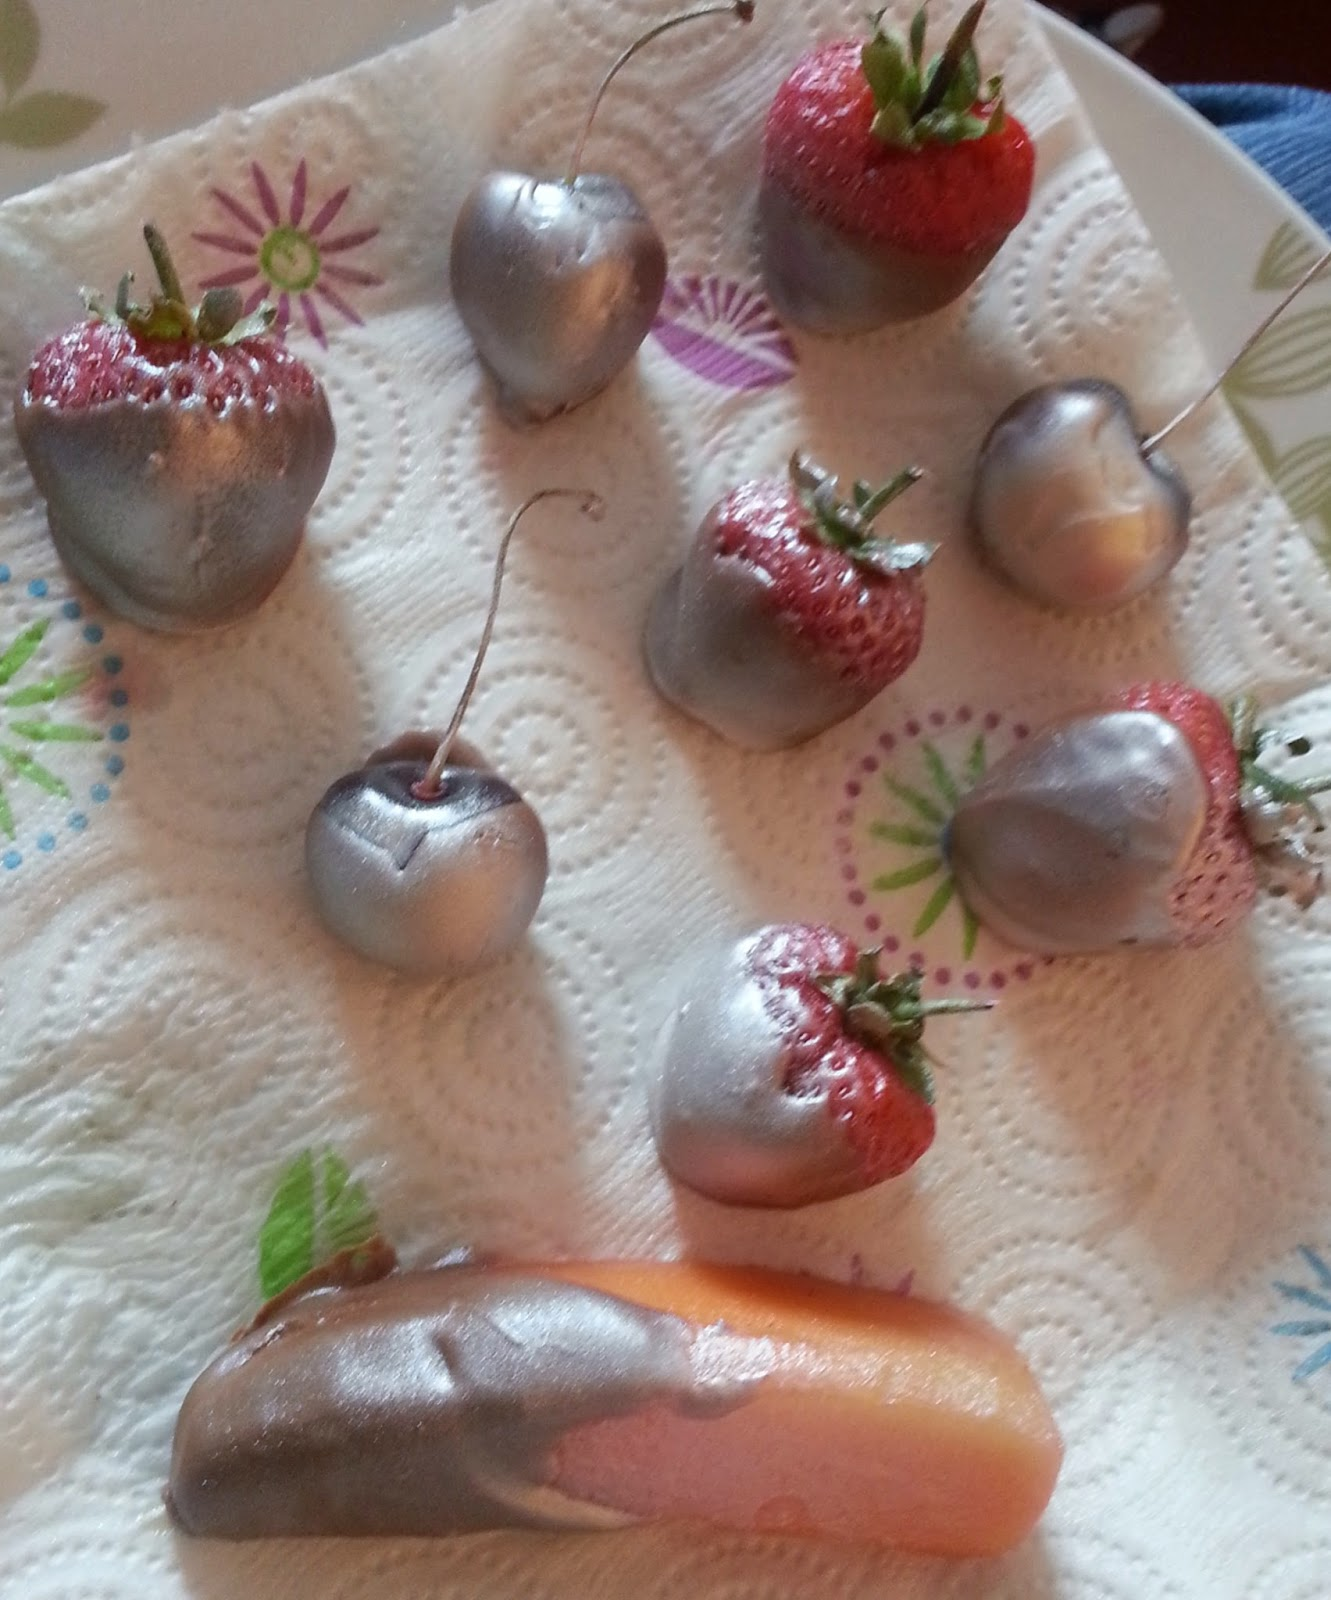 Silver strawberries and other fruit